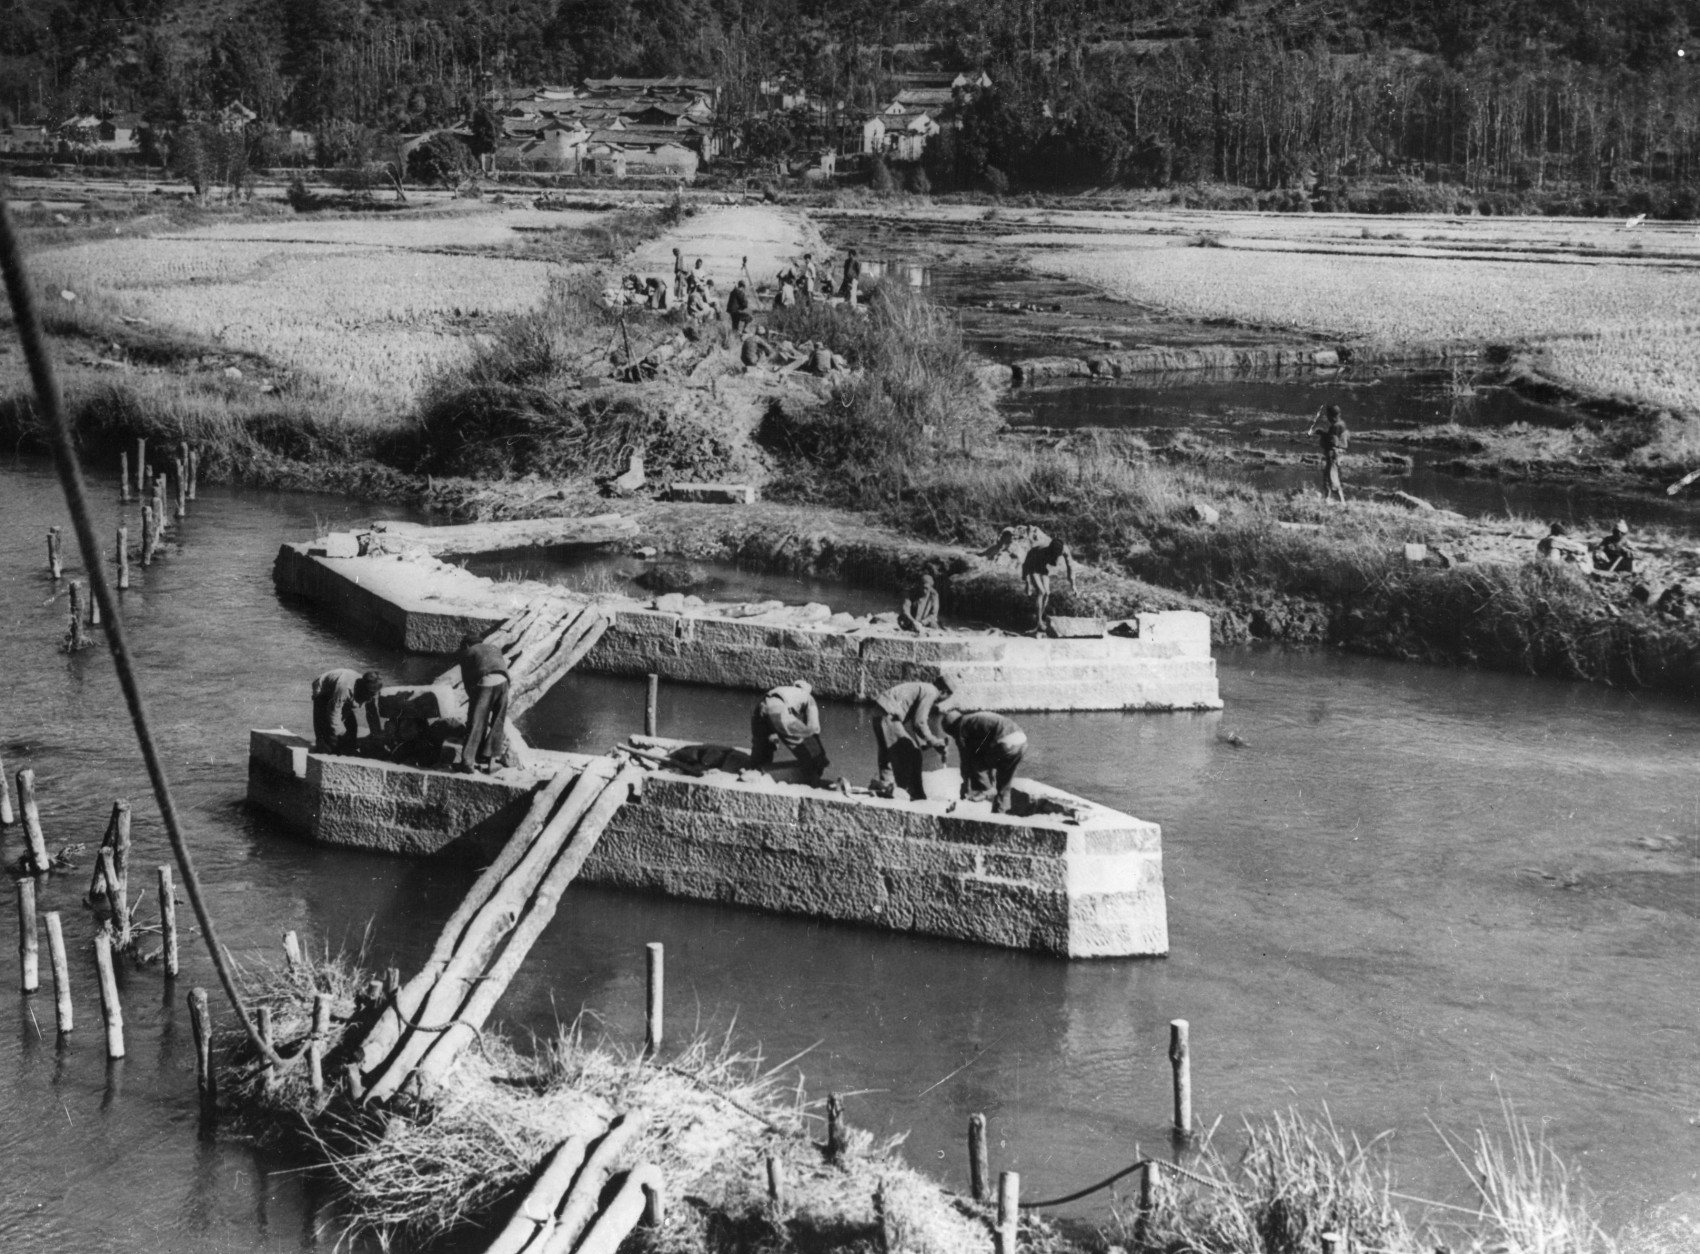 2nd July 1945:  Stonemasons working on the piers of a bridge across the Tisung River in Yunnan Province, China, in order to extend the length of the Stilwell Road. The road is being used by the Allied forces as an overland route to bring supplies to the Chinese Army after routing the Japanese.  (Photo by Keystone/Getty Images)